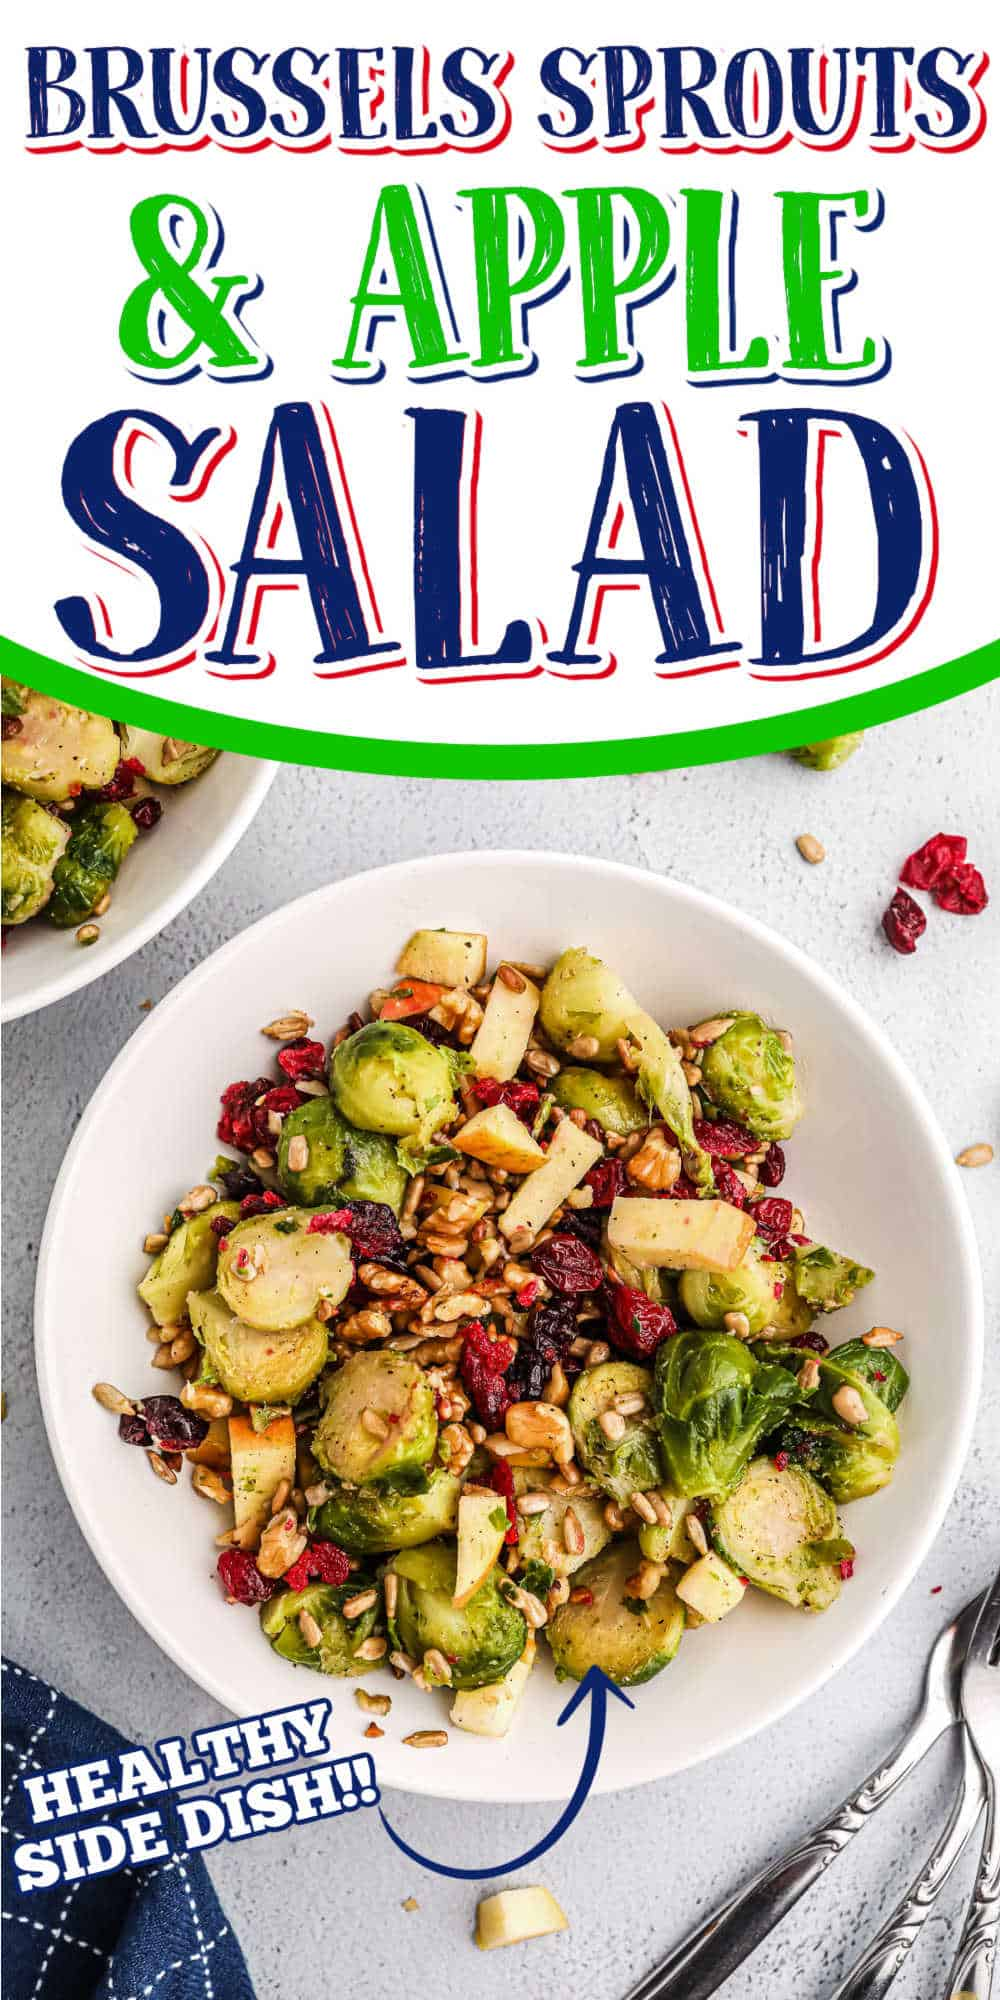 """salad with text """"brussels sprouts & apple salad"""""""